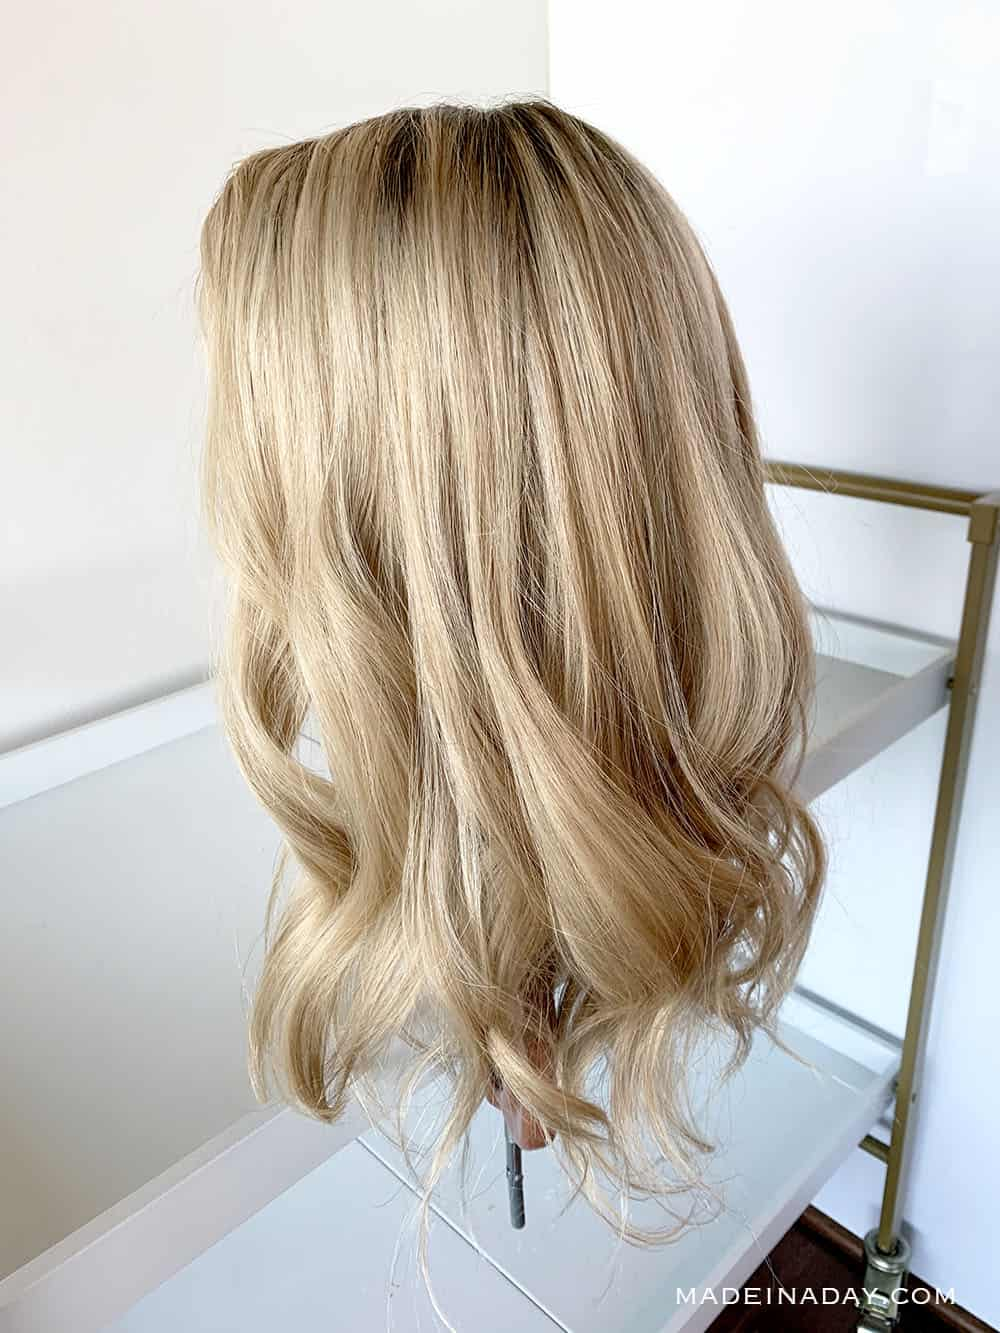 Adding Wefts to a Hair Topper or Wig